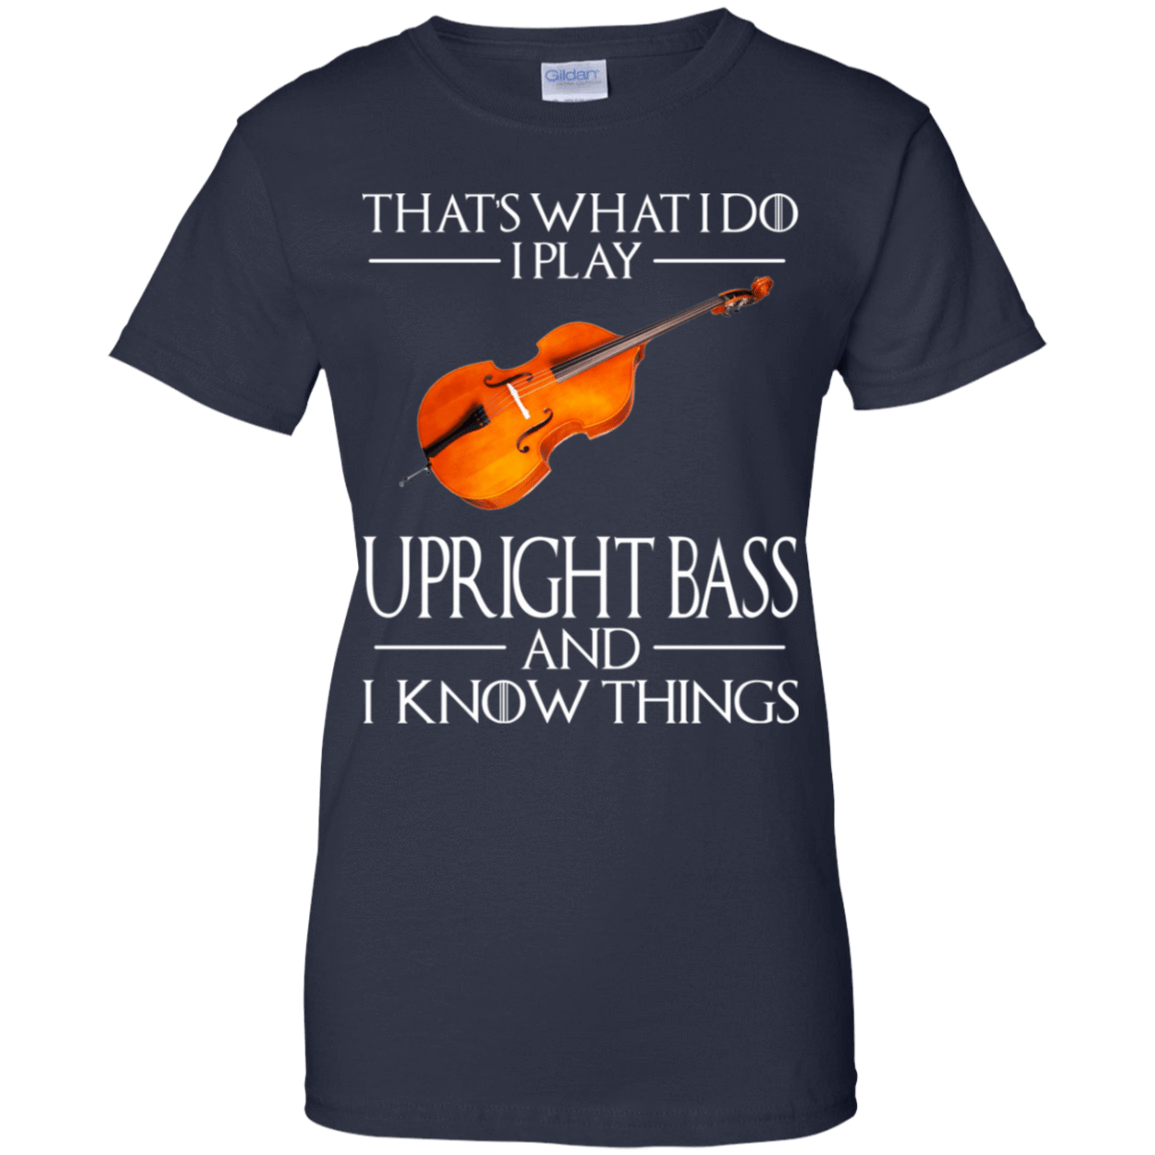 That's What I Do I Play Upright Bass And I Know Things 939-9259-73427950-44765 - Tee Ript